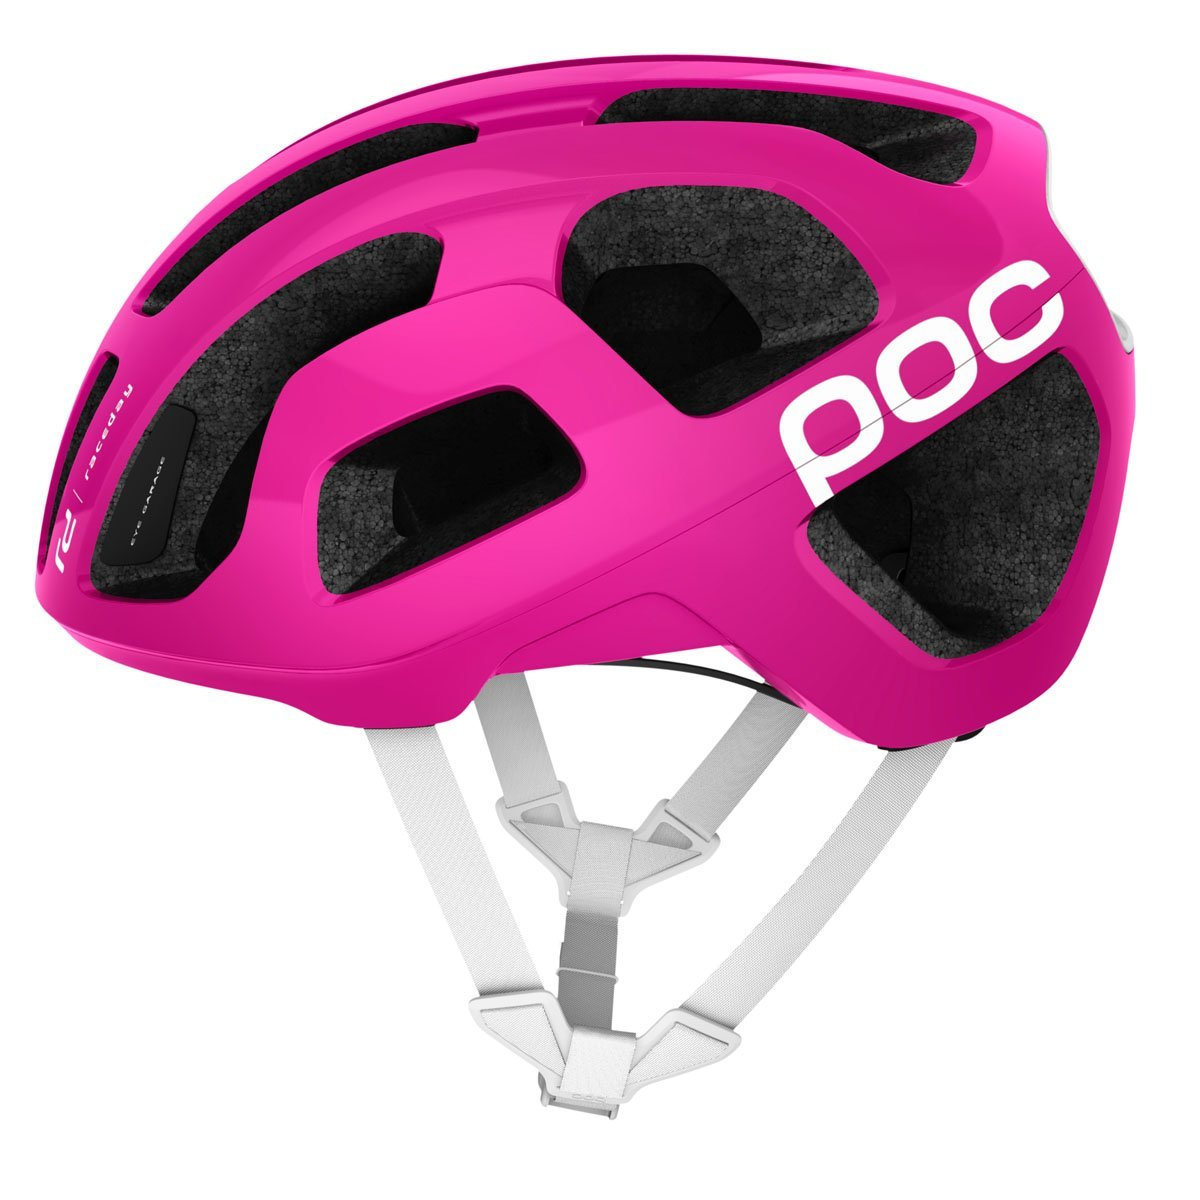 Small POC Bicycle Helmets